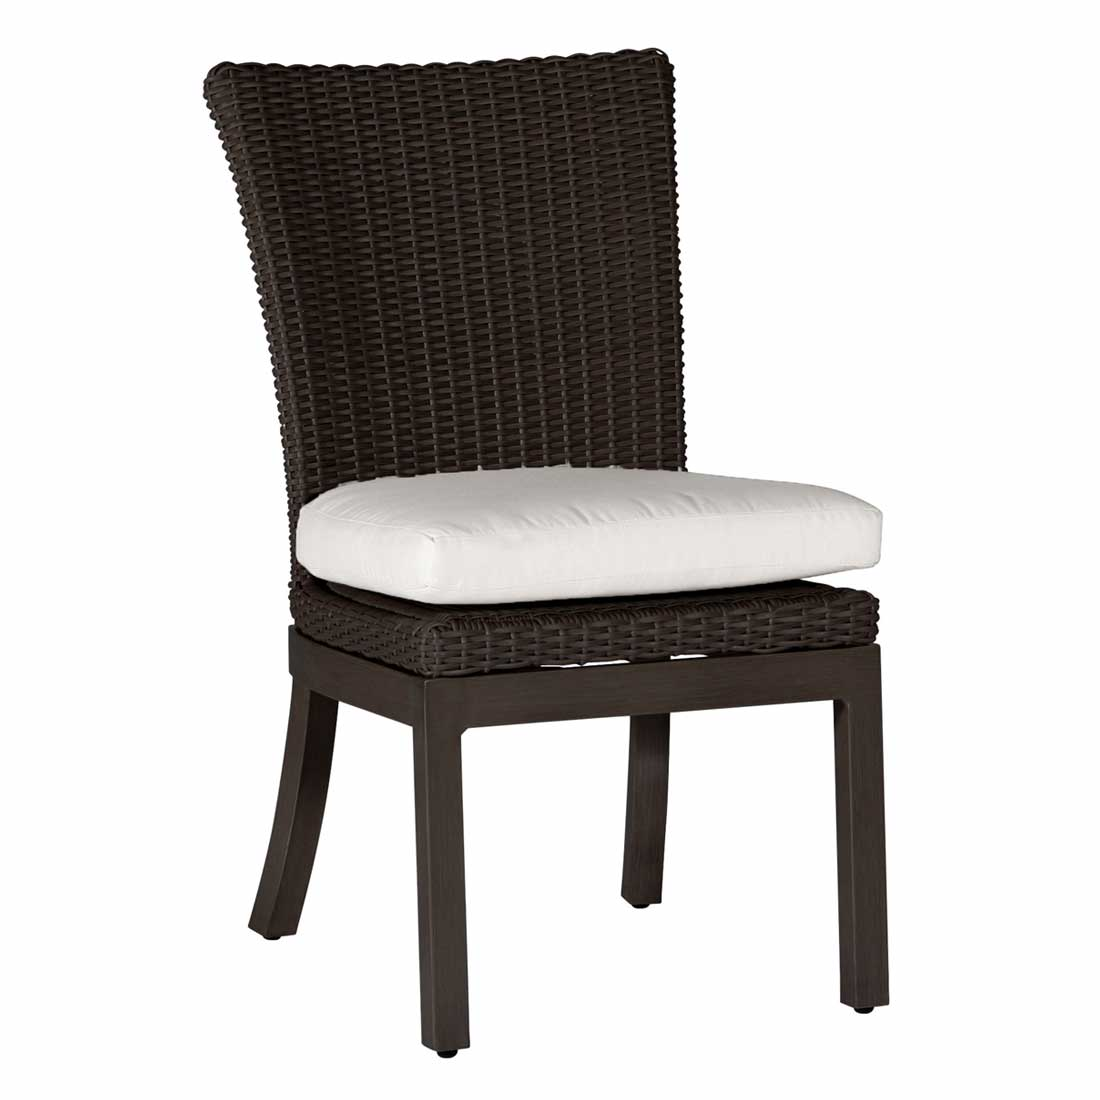 rustic side chair - Dimensions: W20 D25.25 H36.5